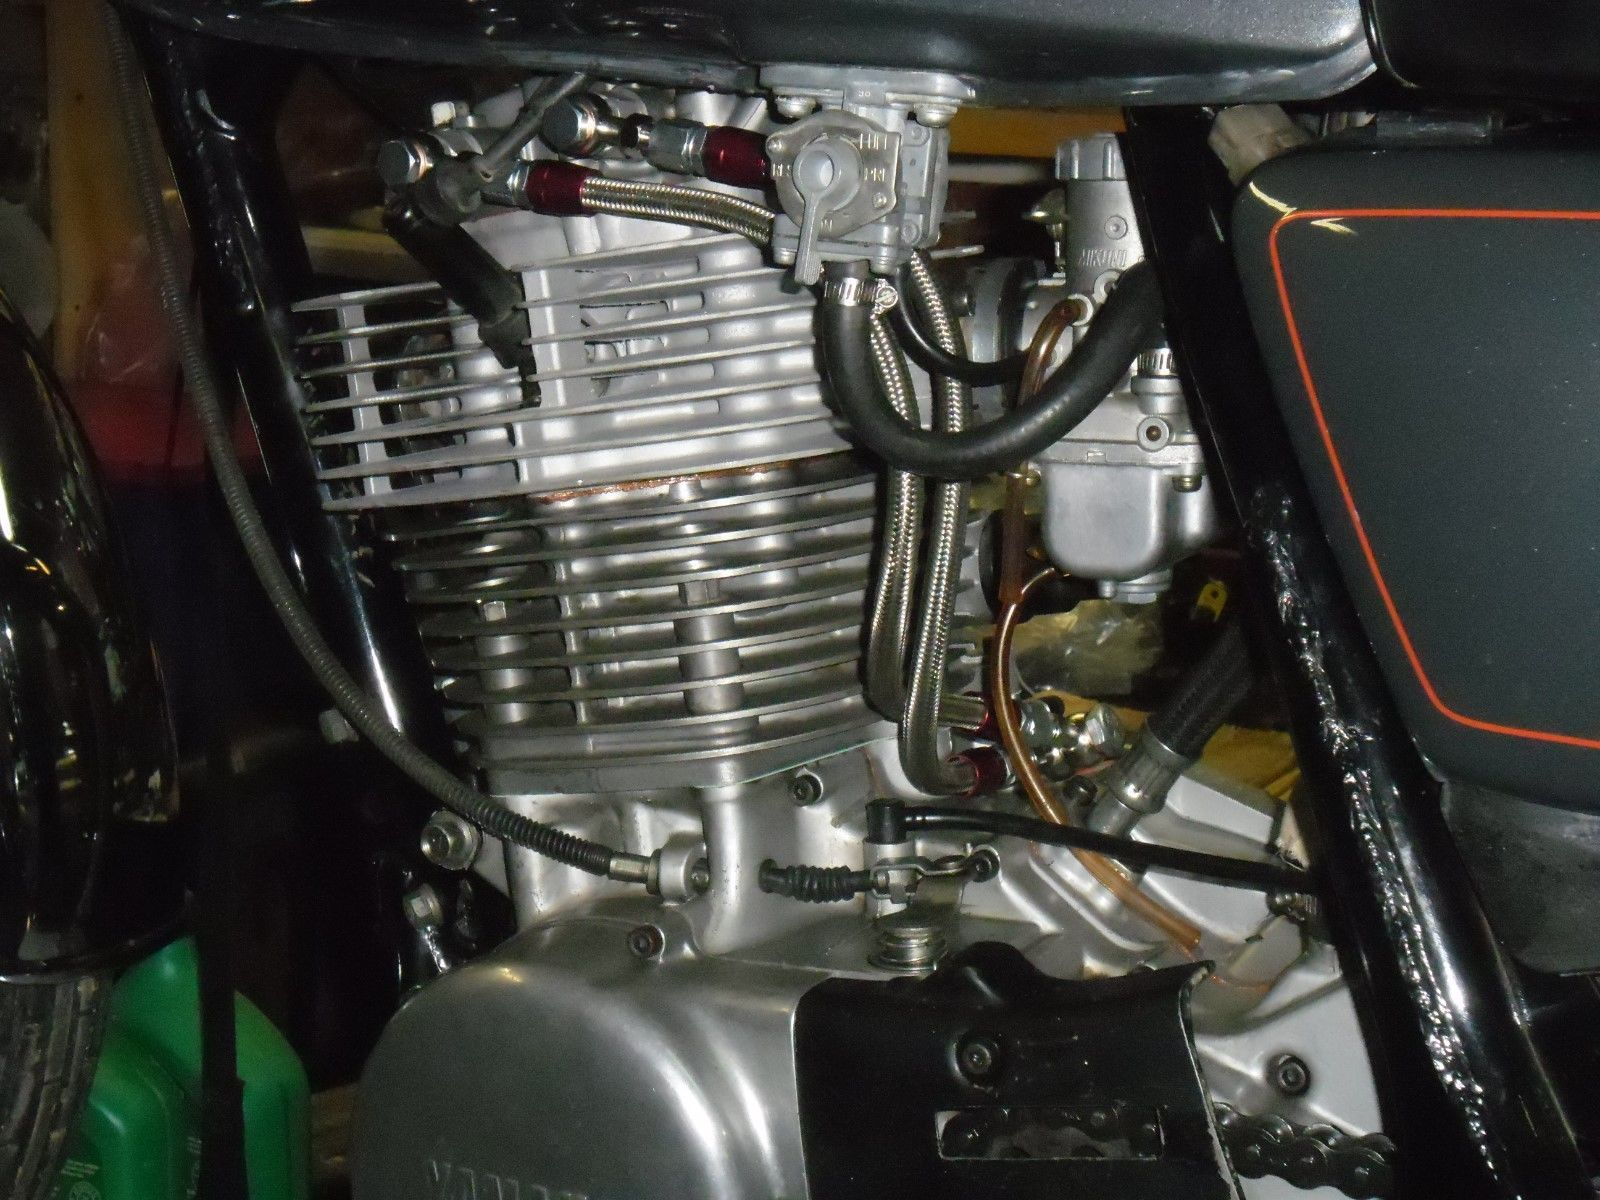 Stainless Braided Dual Feed Rocker Oil Line Yamaha Sr500 Xt500 Tt500 Hl500 Sr400 Ebay Yamaha Sr500 Rocker Yamaha